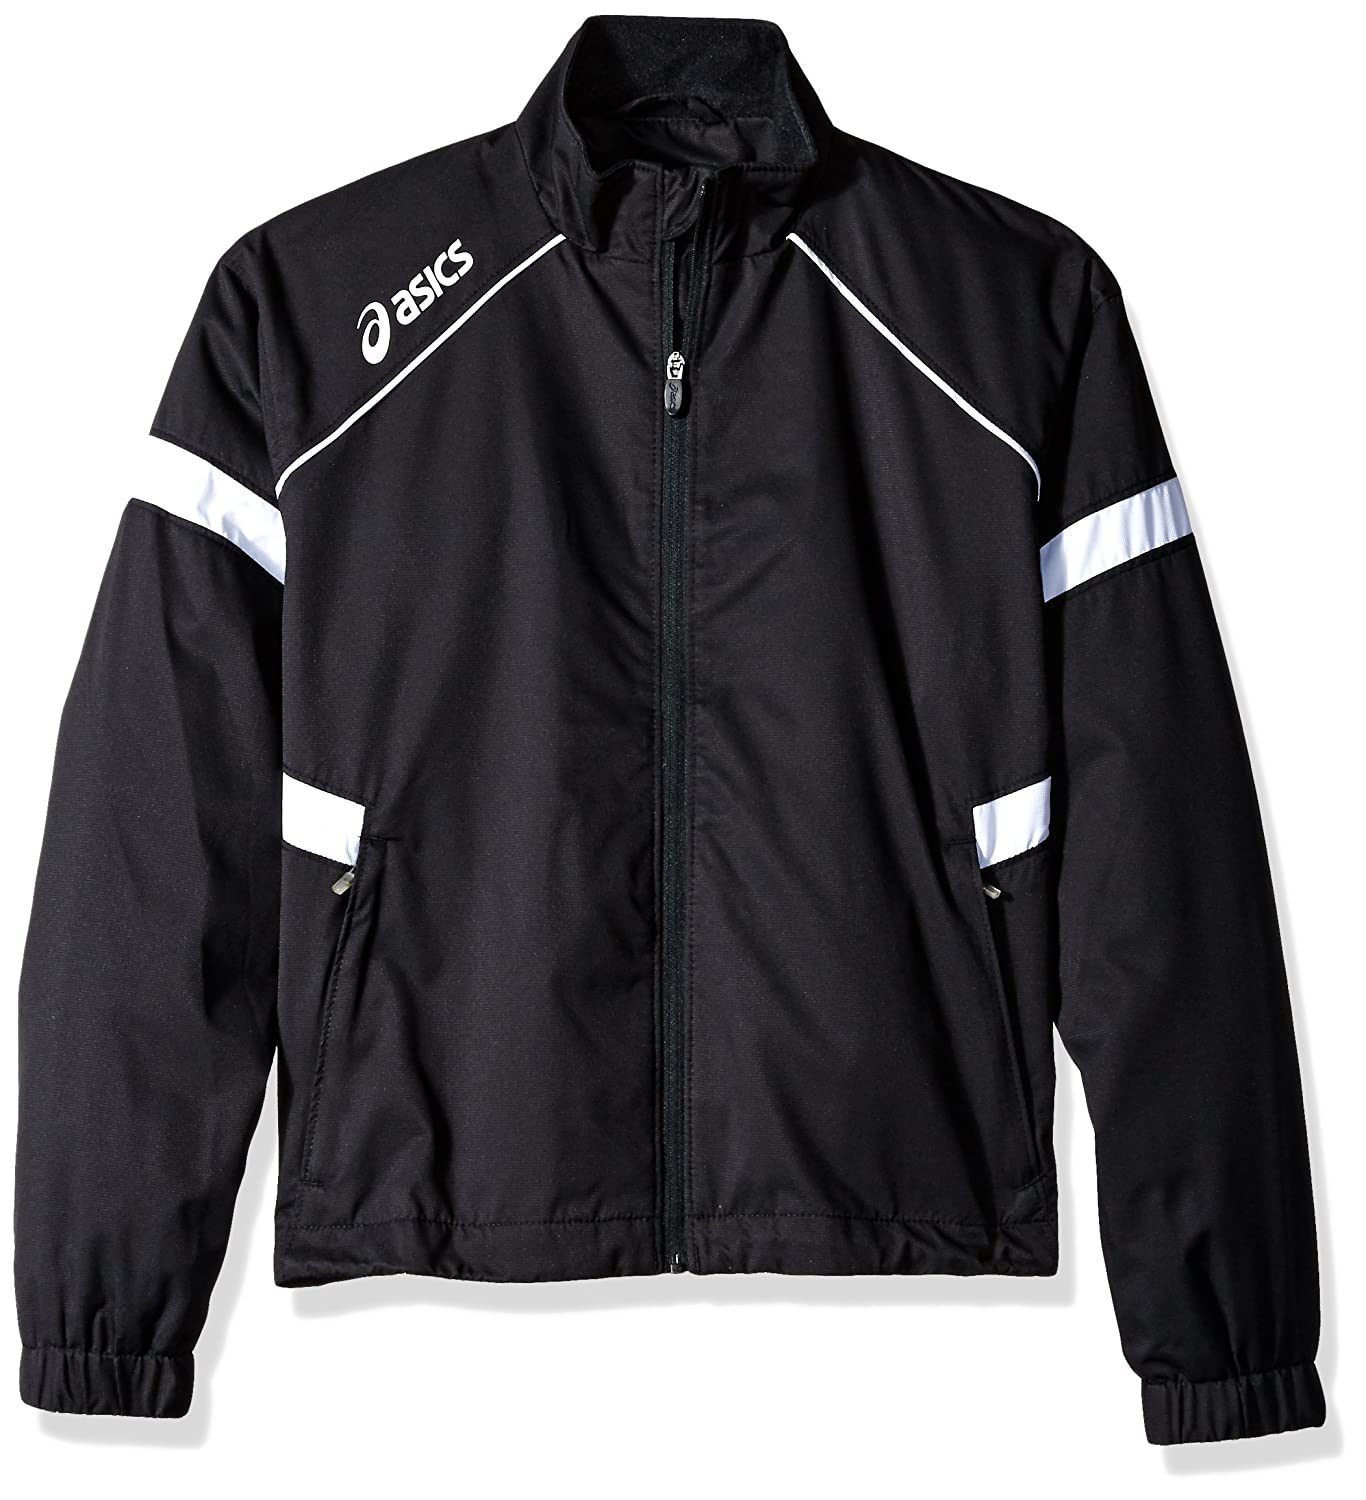 ASICS Junior Surge Warm-Up Jacket (Black/White) ASICS Sports Apparel YT1979.9001-P